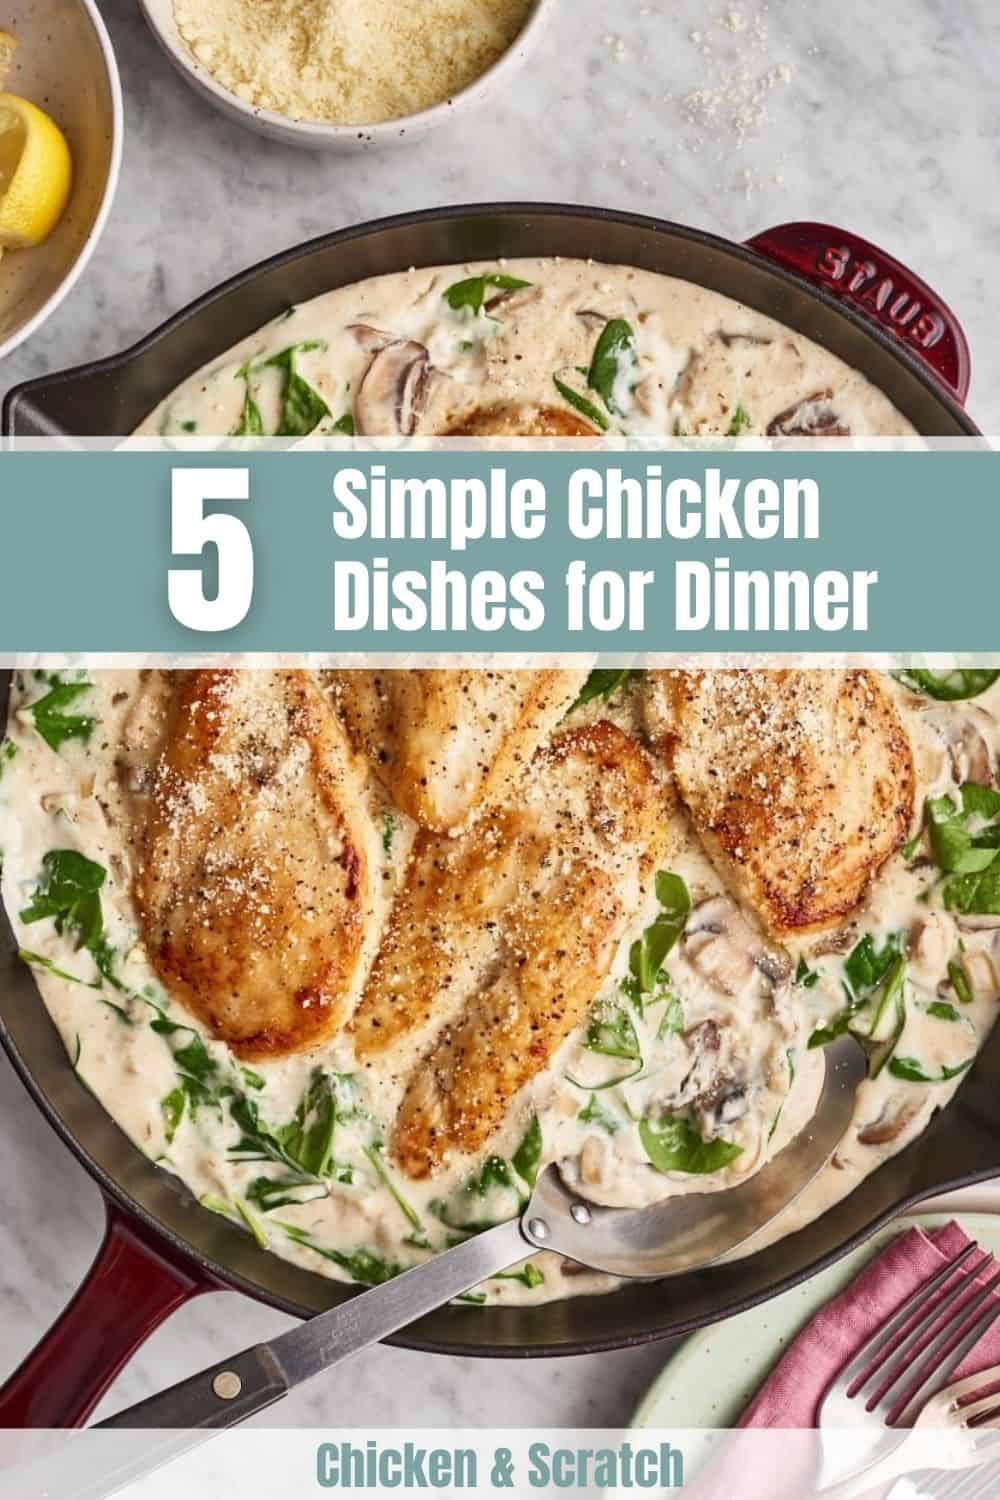 Simple Chicken Dishes for Dinner